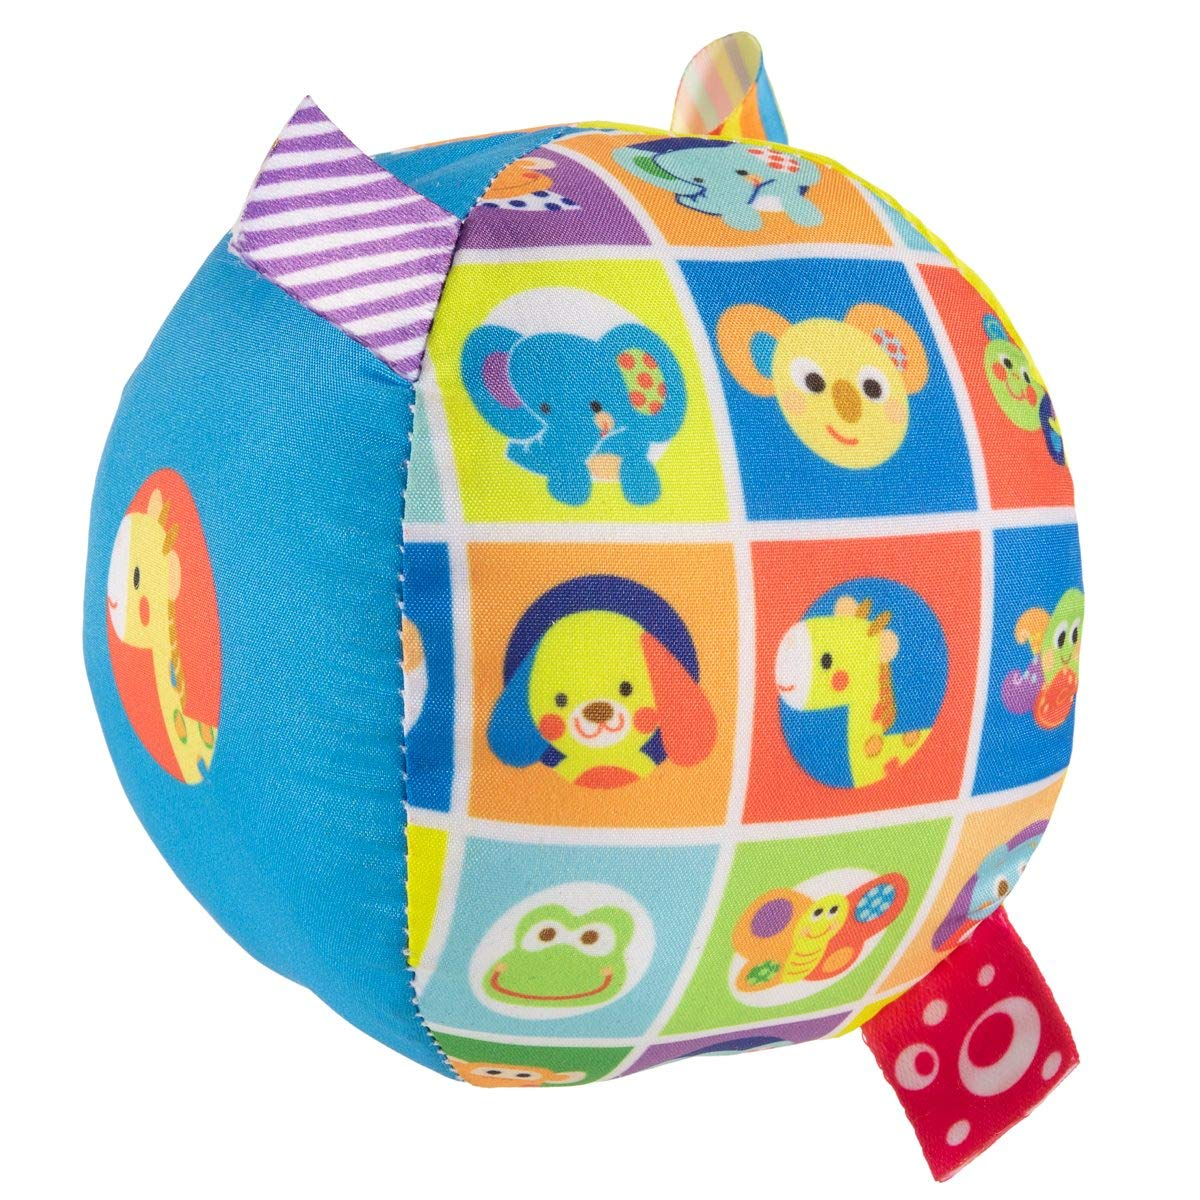 Chicco 0010057000000 Branded goods Baby Under blast sales Multi-Coloured Ball